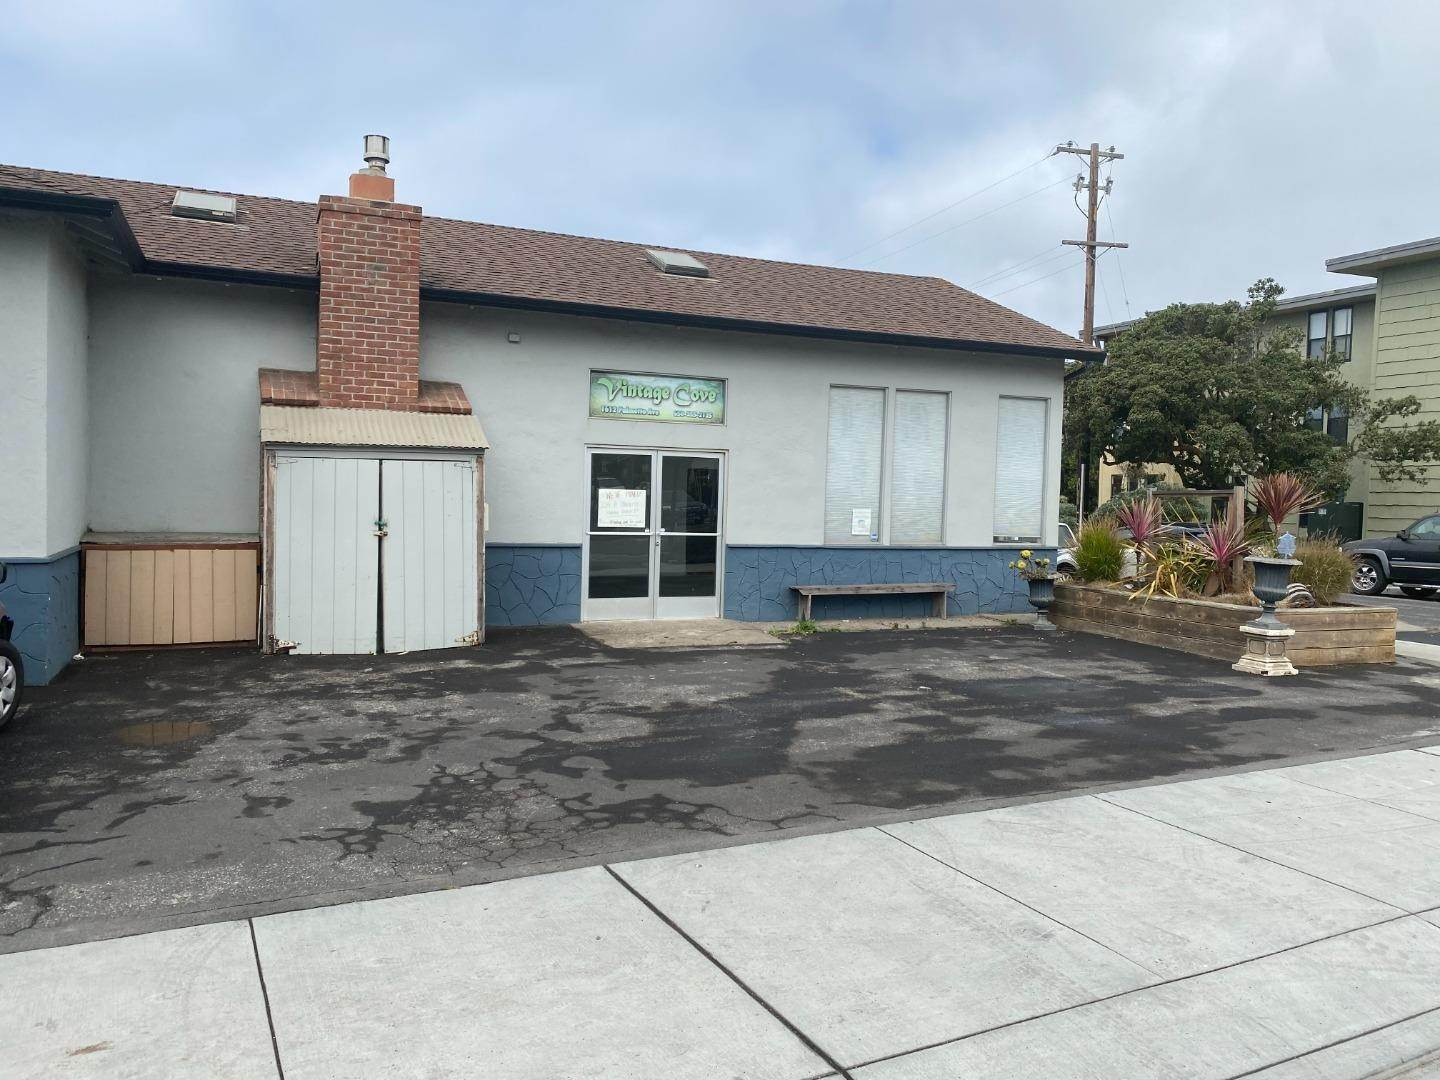 Comercial en 1610 Palmetto Avenue Pacifica, California 94044 Estados Unidos